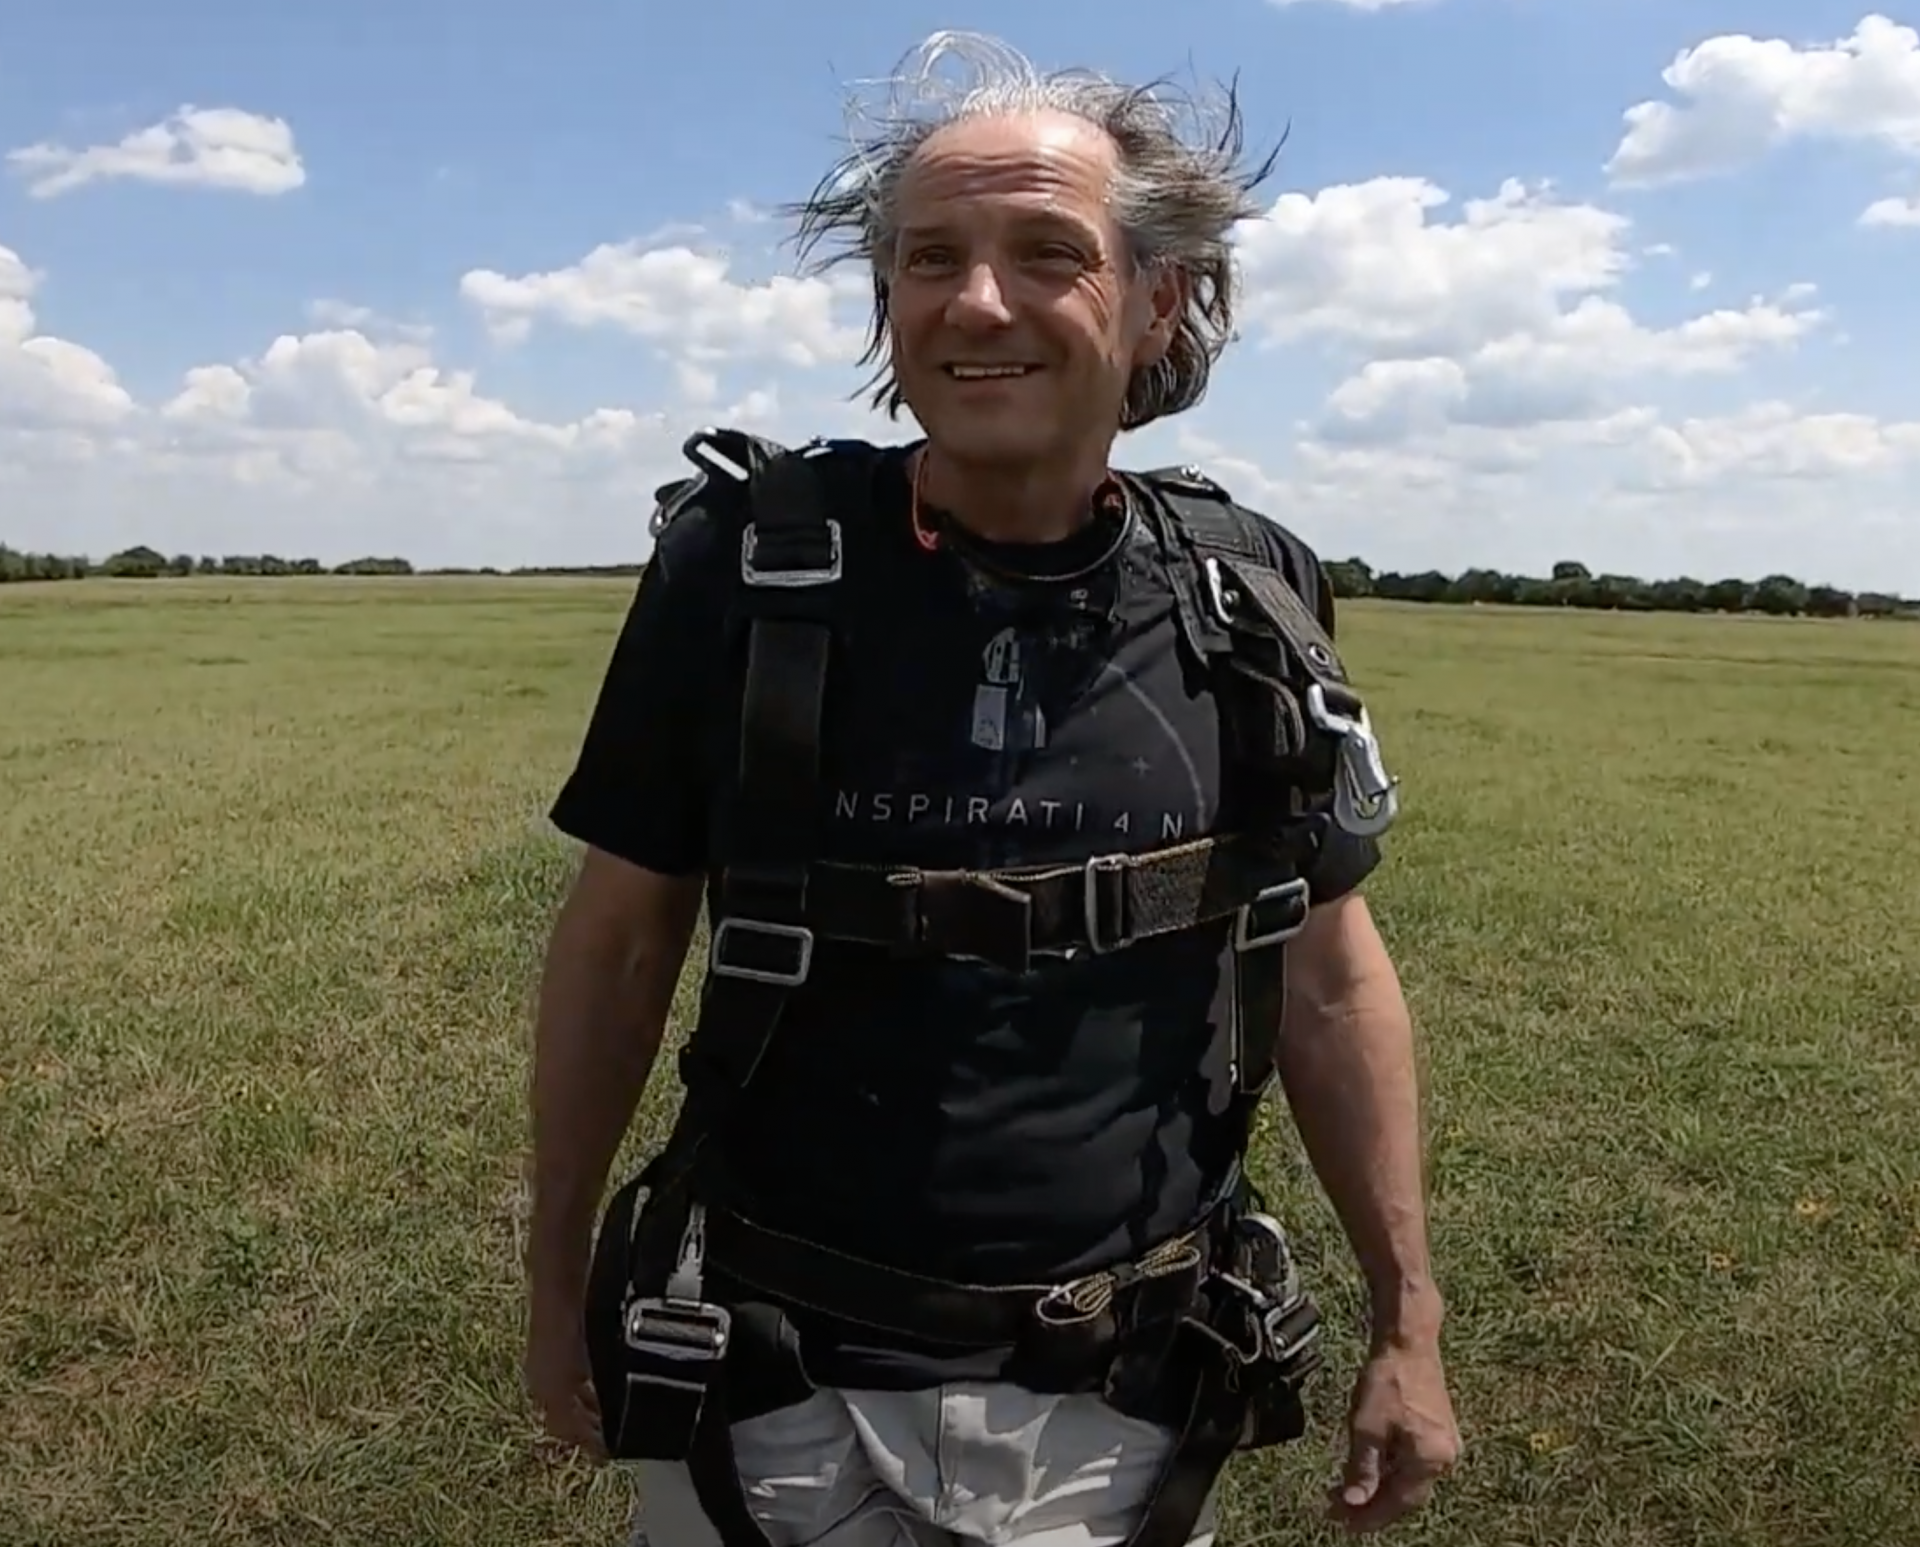 Hair after Texas Skydiving